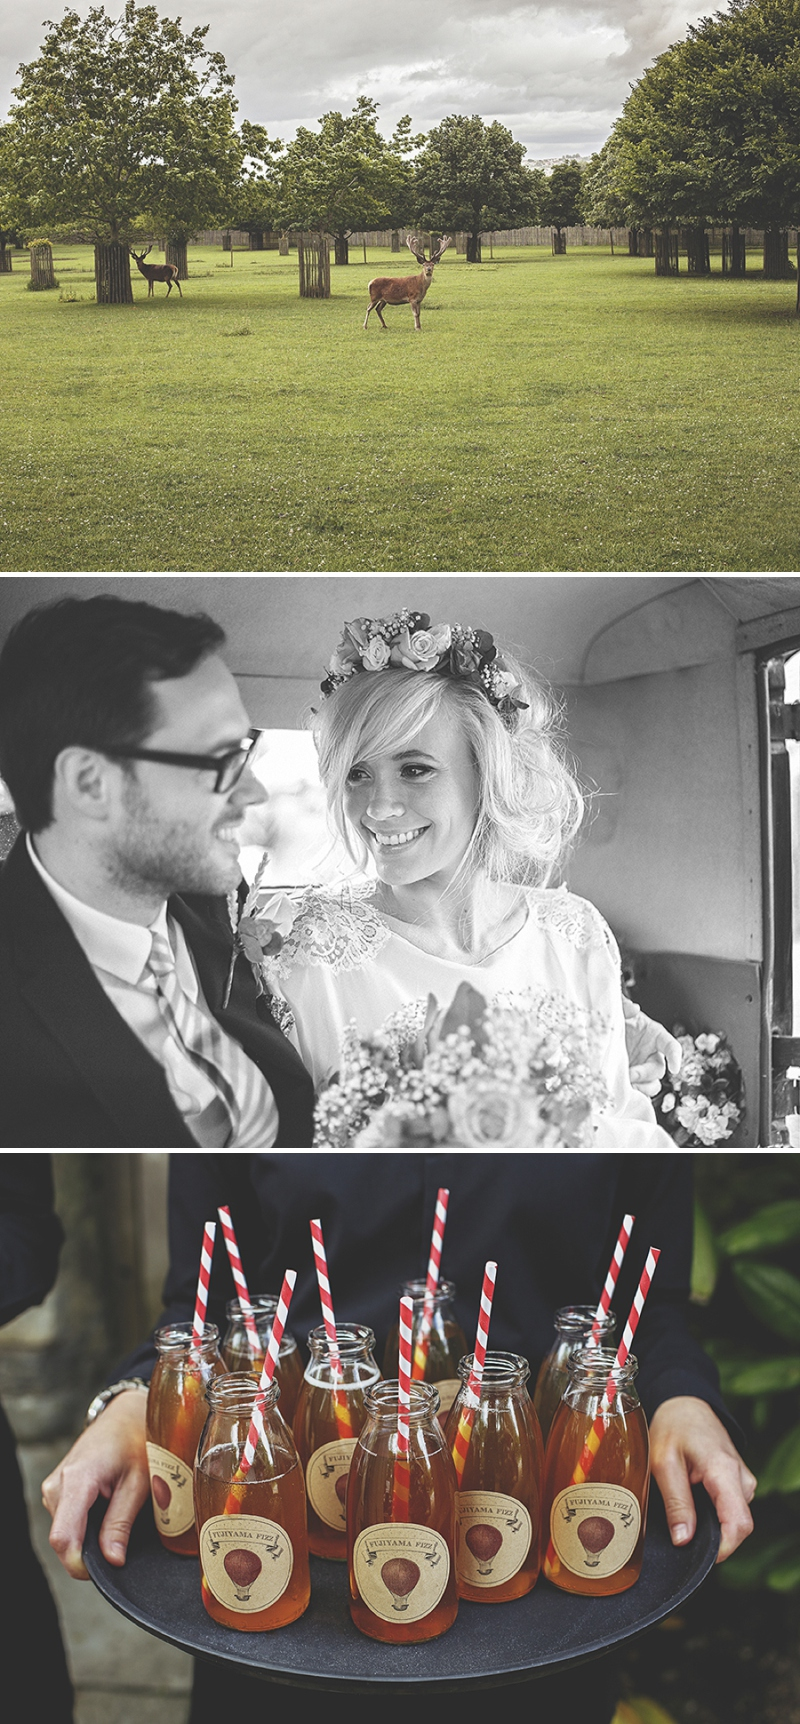 A bespoke designed by the bride wedding dress for a festival Glastonbury themed wedding in Somerset with a floral crown and vintage styling and coral bridesmaids_0477